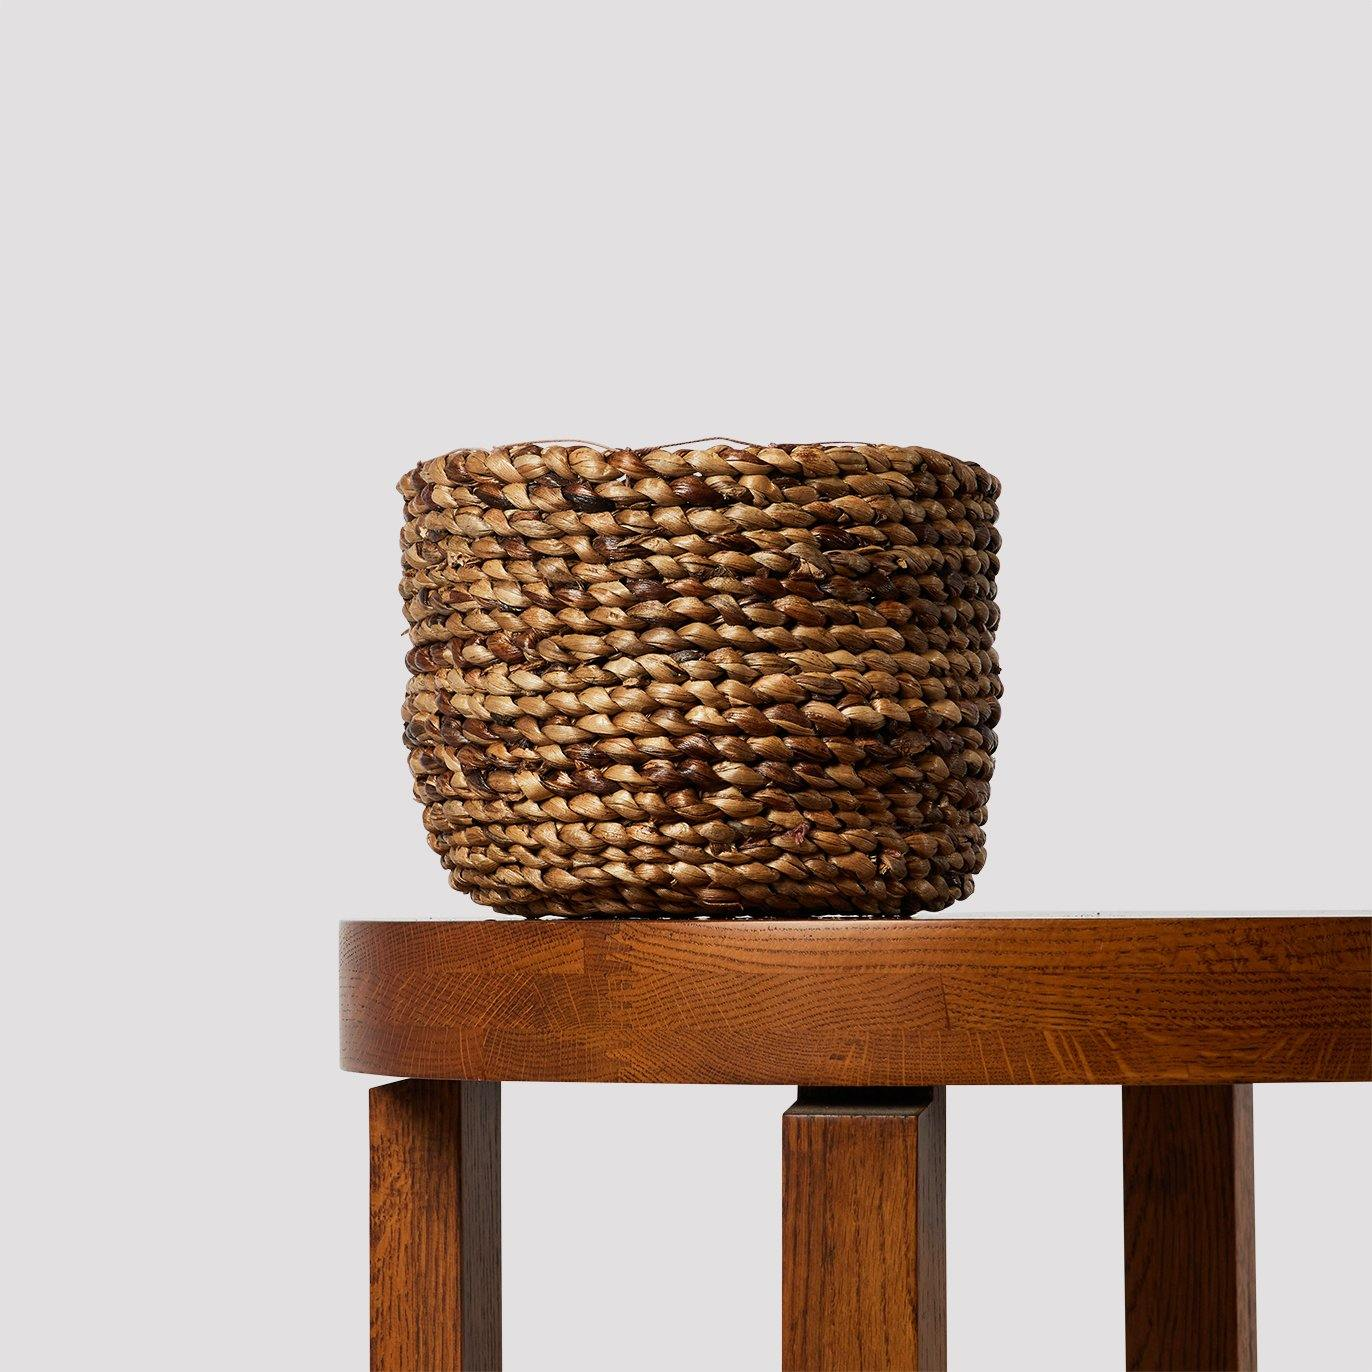 Alba Natural Hyacinth Basket - The Good Plant Co